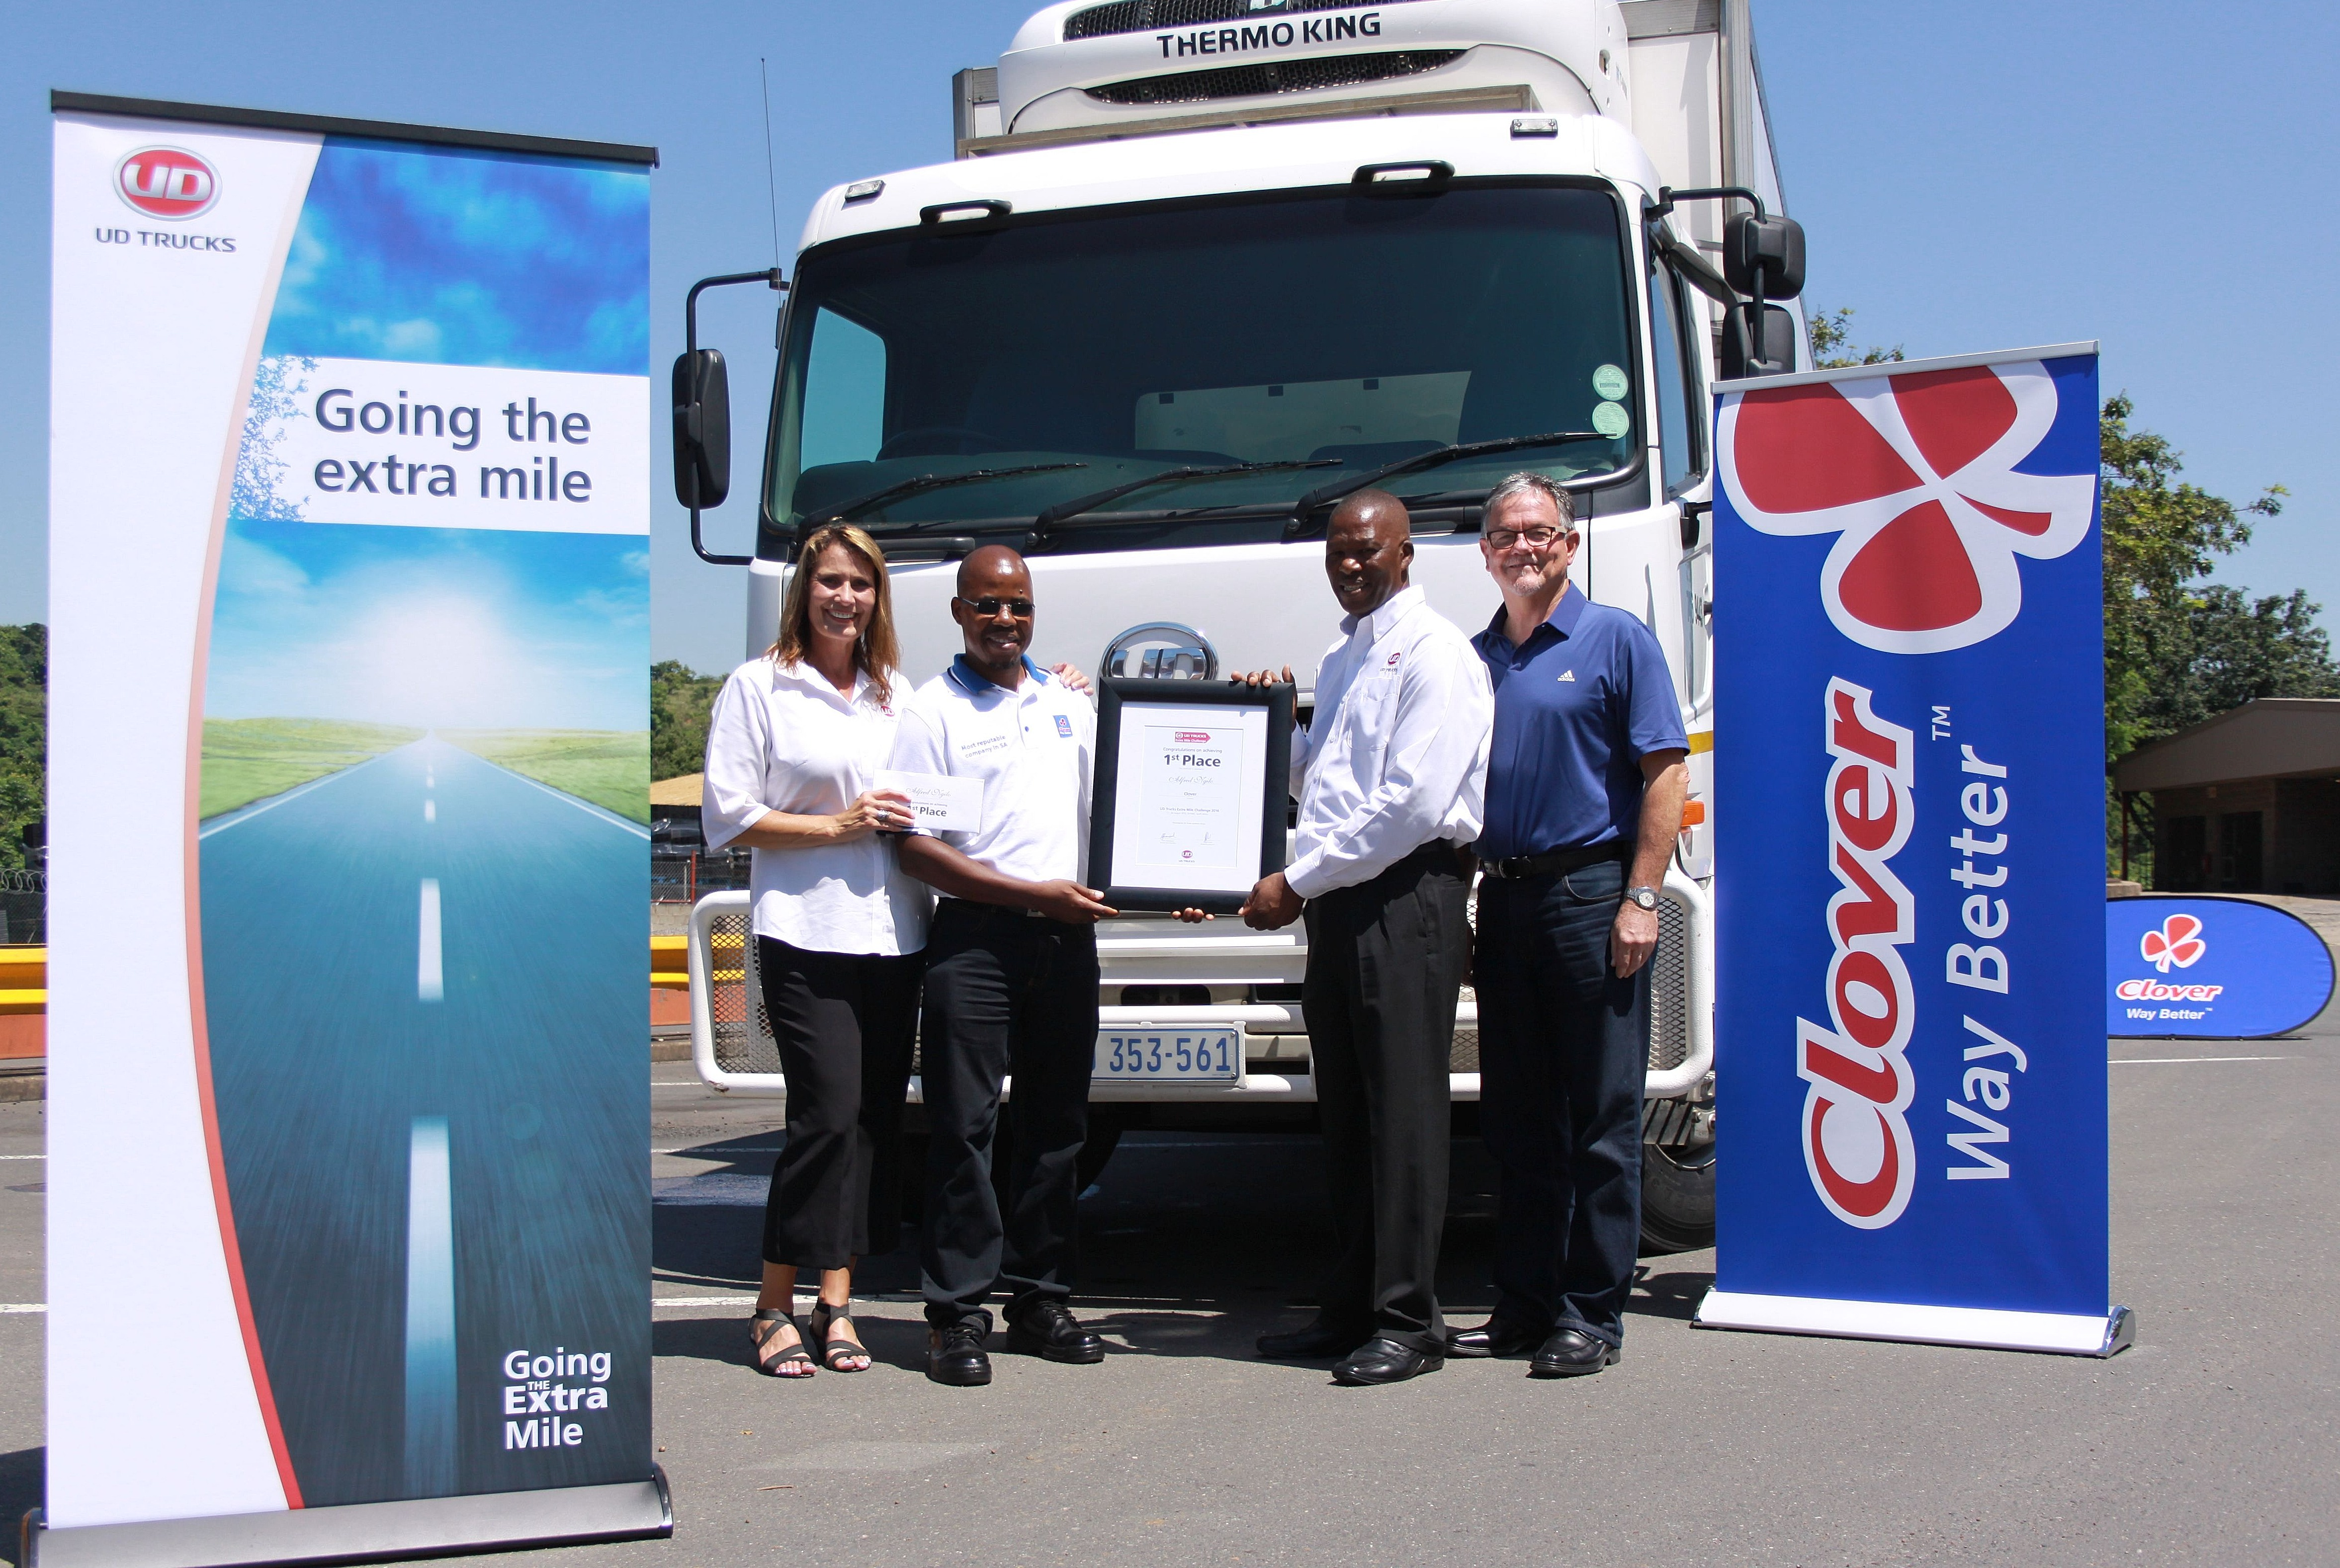 Alfred Ngilo, from Clover in KZN (centre left), is the man representing South Africa in the global UD Extra Mile Challenge driver competition being held in Japan. Accompanying him on the trip are Ann Pienaar, UD Trucks' Fleet Sales Manager (far left) and Derick Moima (second from right), UD's Demonstration Driver. A proud Peet Pretorius (right), HR Manager for Clover in KZN, is fully behind his star driver in every way. Congratulations Alfred. Everyone at FleetWatch is cheering for you.